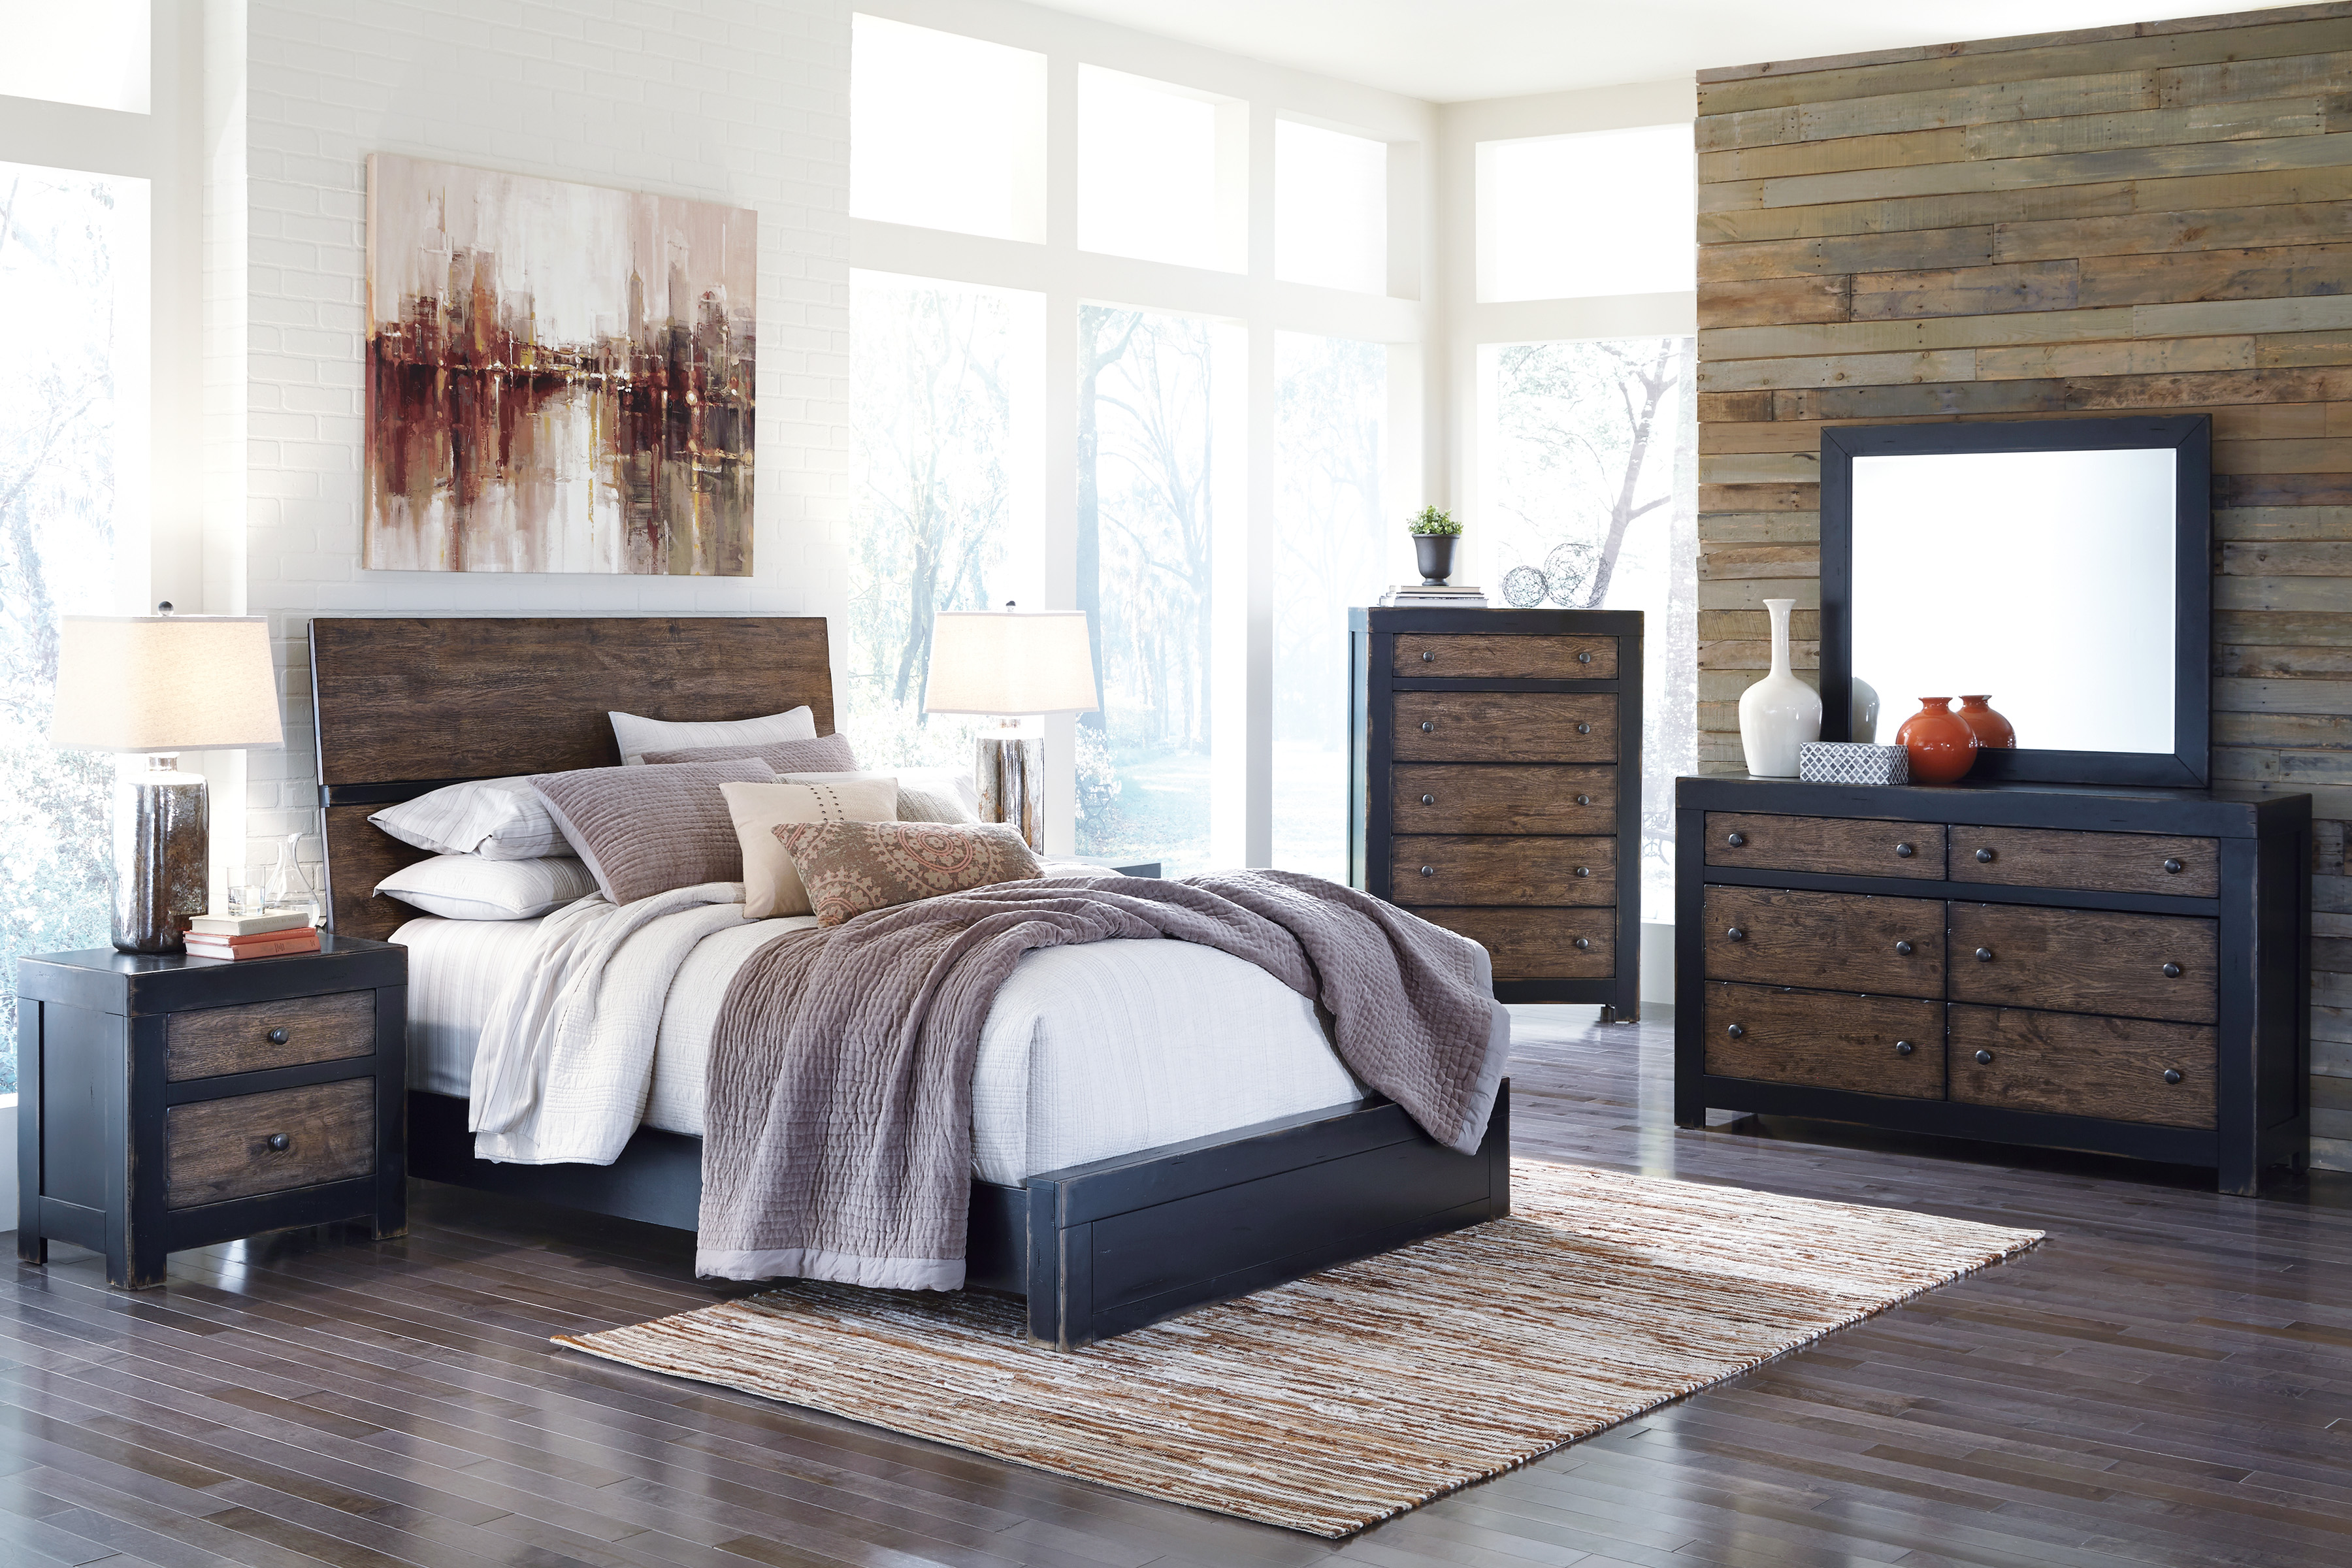 5 Tips For Layering Area Rugs